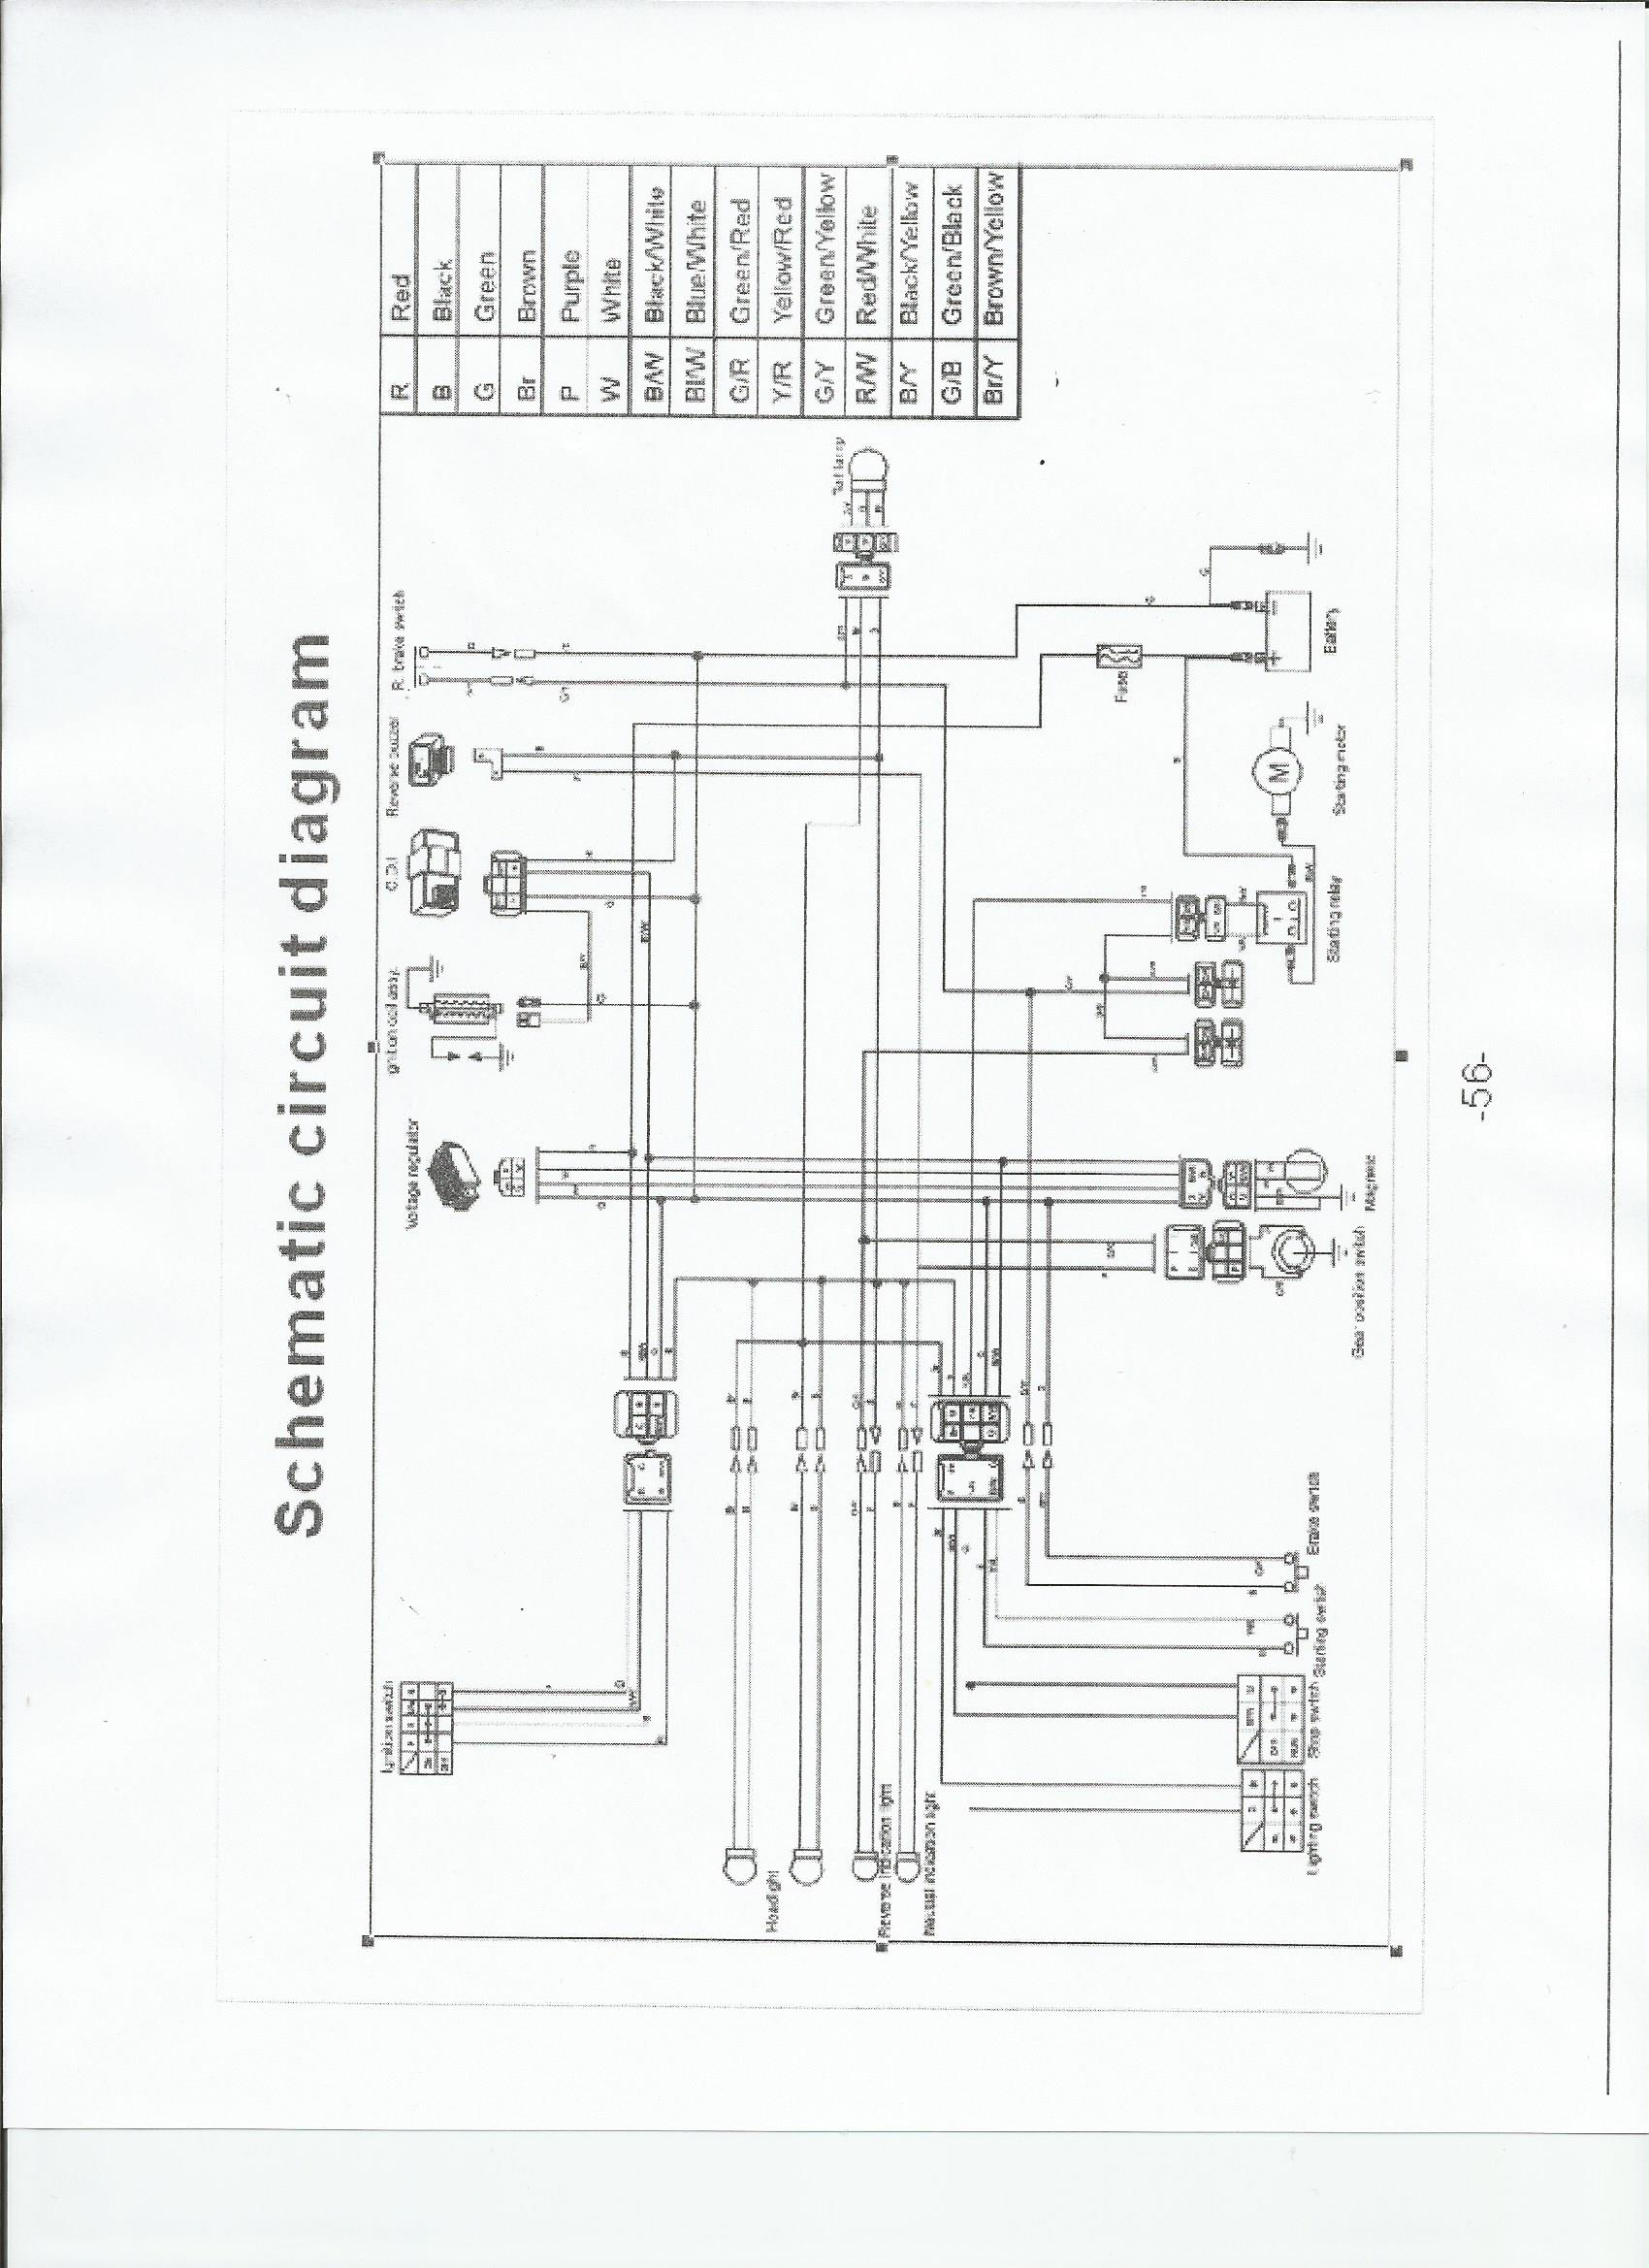 2004 honda sportrax 300ex engine diagram 2004 honda